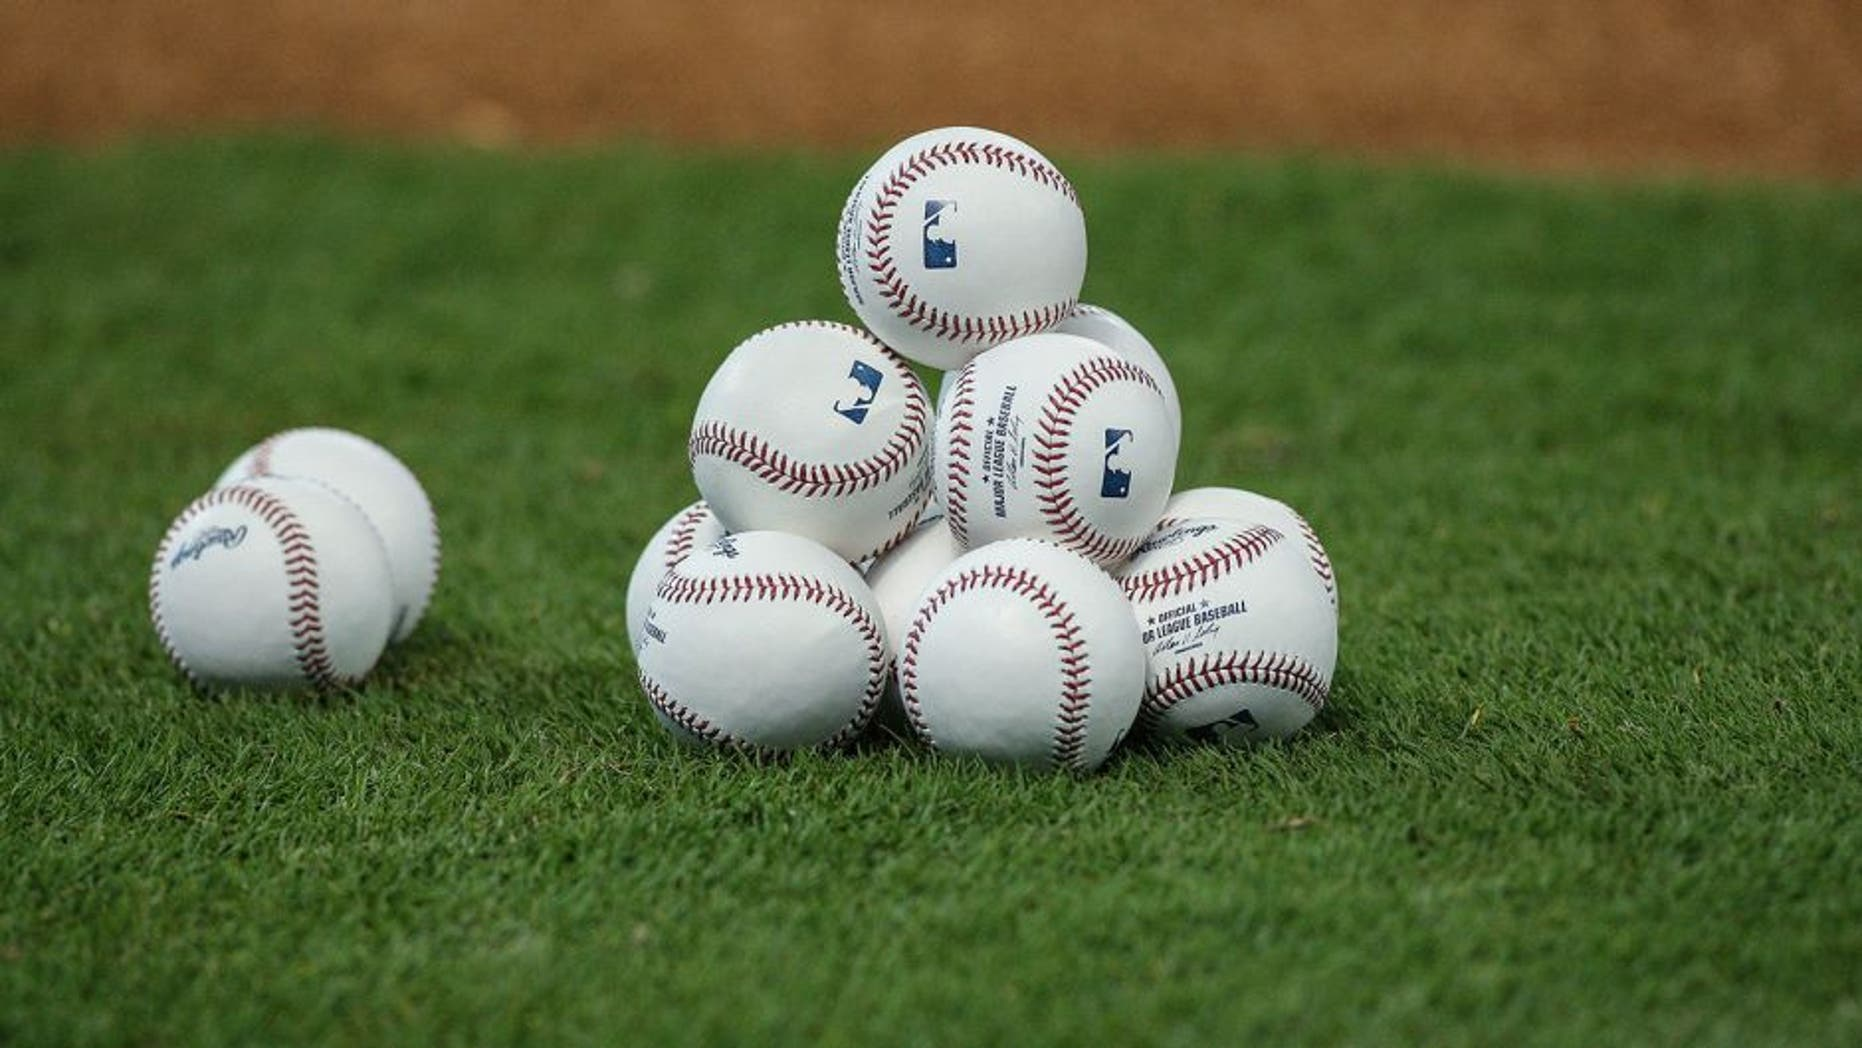 Apr 3, 2014; Houston, TX, USA; General view of baseballs before a game between the New York Yankees and the Houston Astros at Minute Maid Park. Mandatory Credit: Troy Taormina-USA TODAY Sports